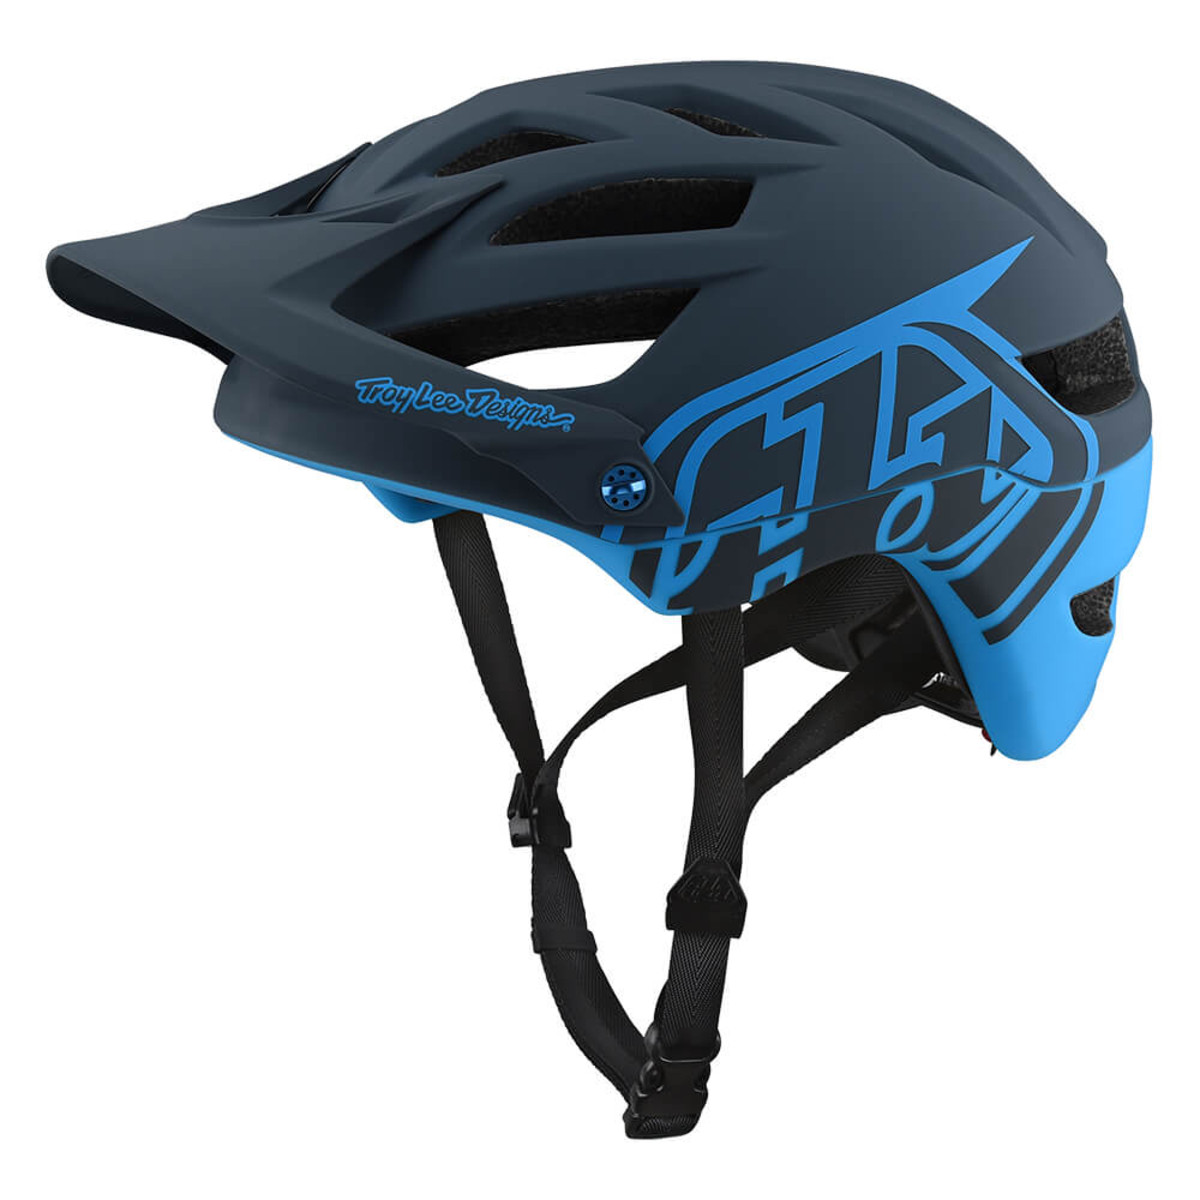 TLD A1 Drone helmet returns just in time for the holidays